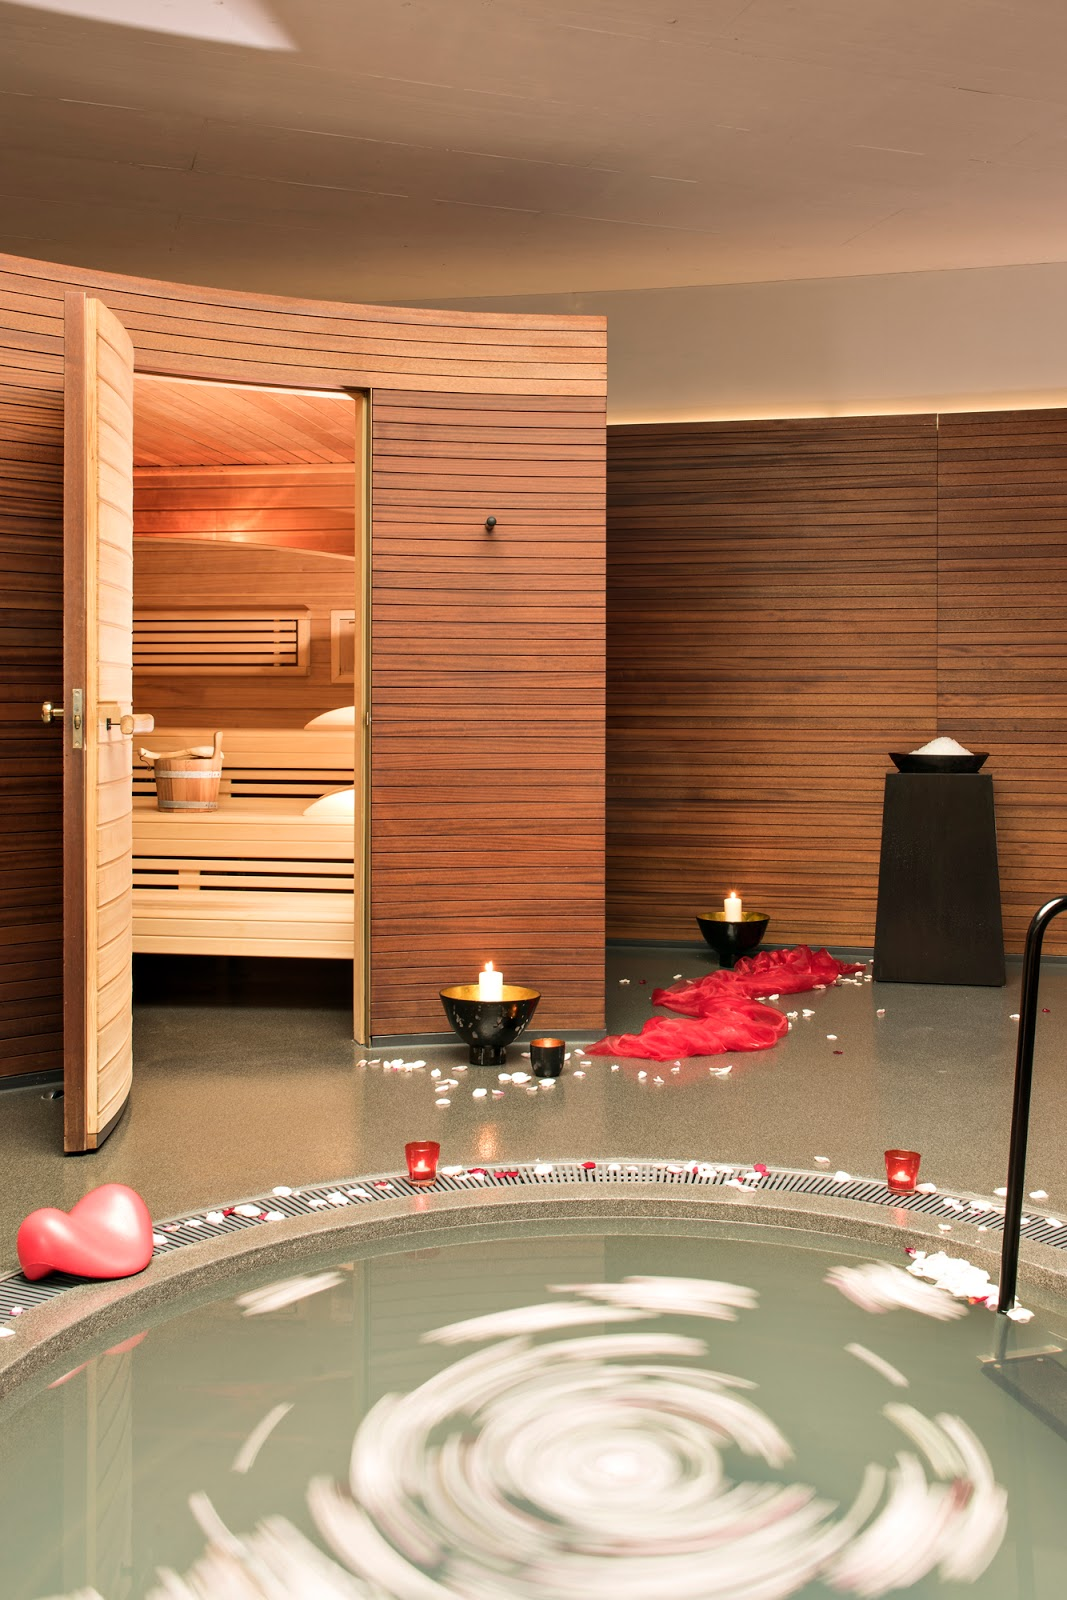 park hotel weggis spa cottage things i would die for. Black Bedroom Furniture Sets. Home Design Ideas